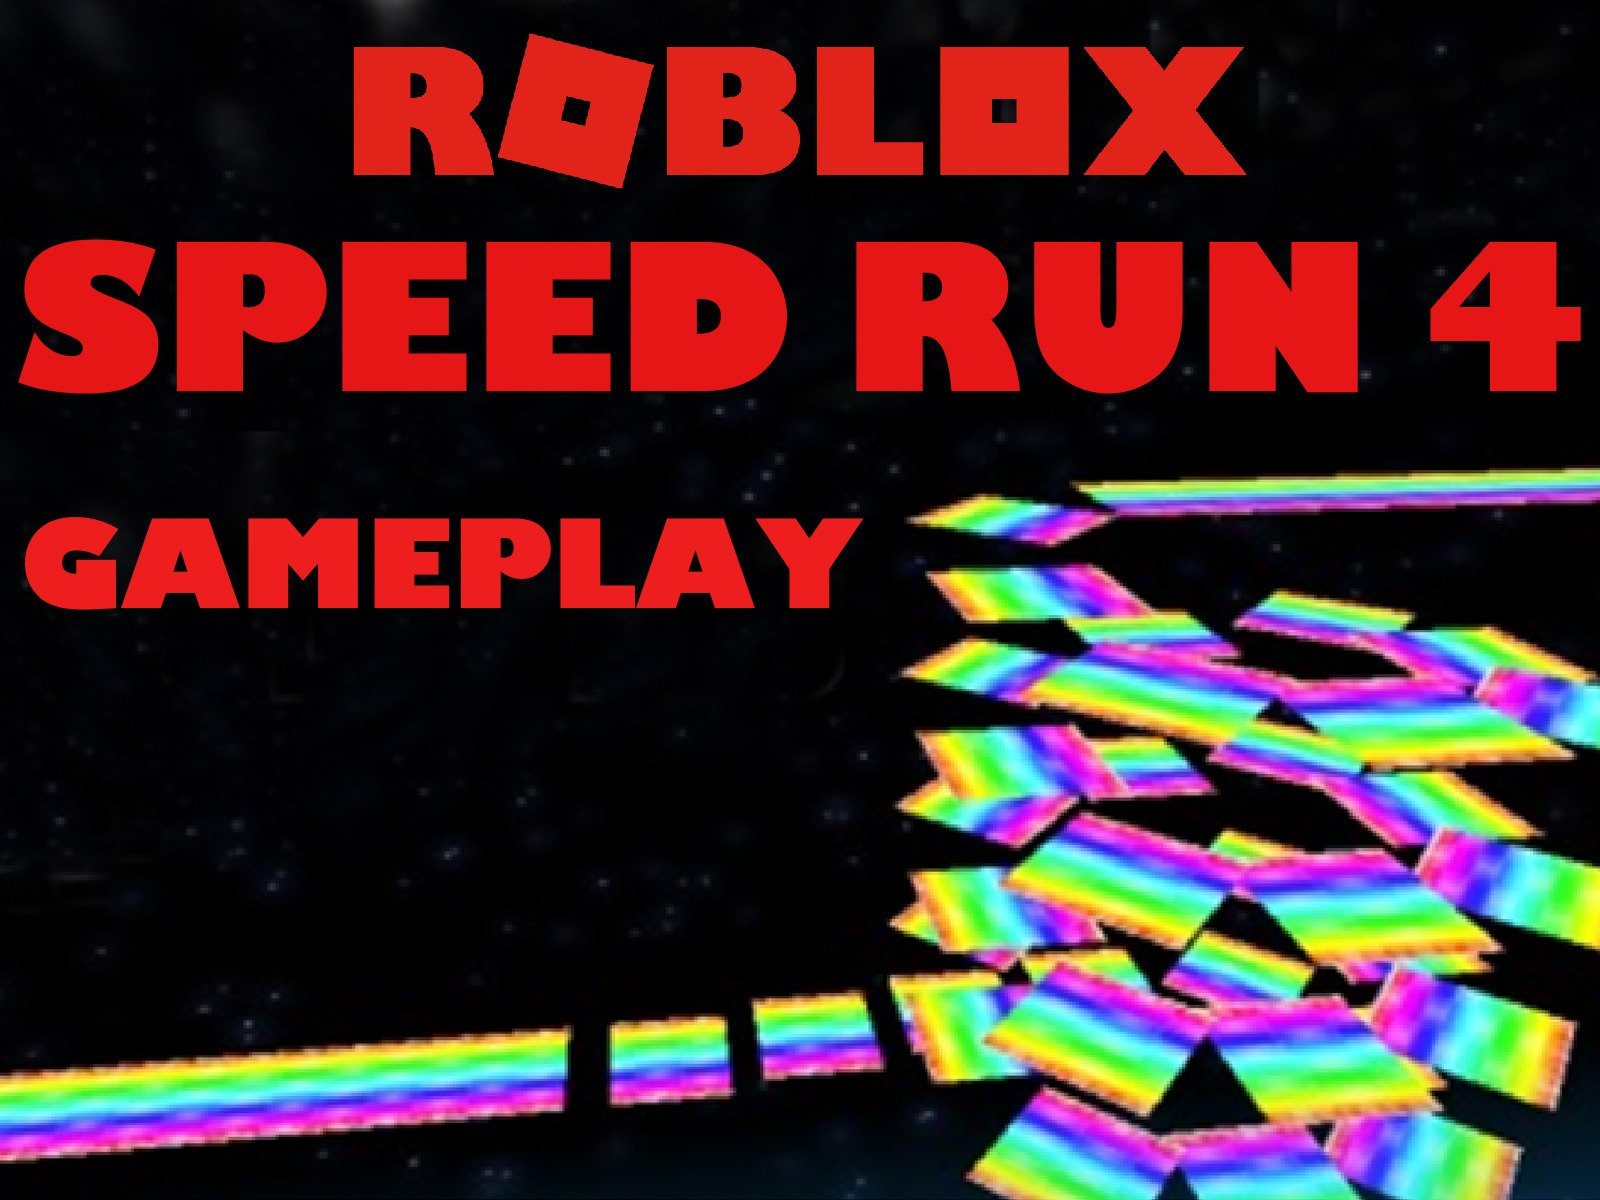 Clip: Roblox Speed Run 4 Gameplay